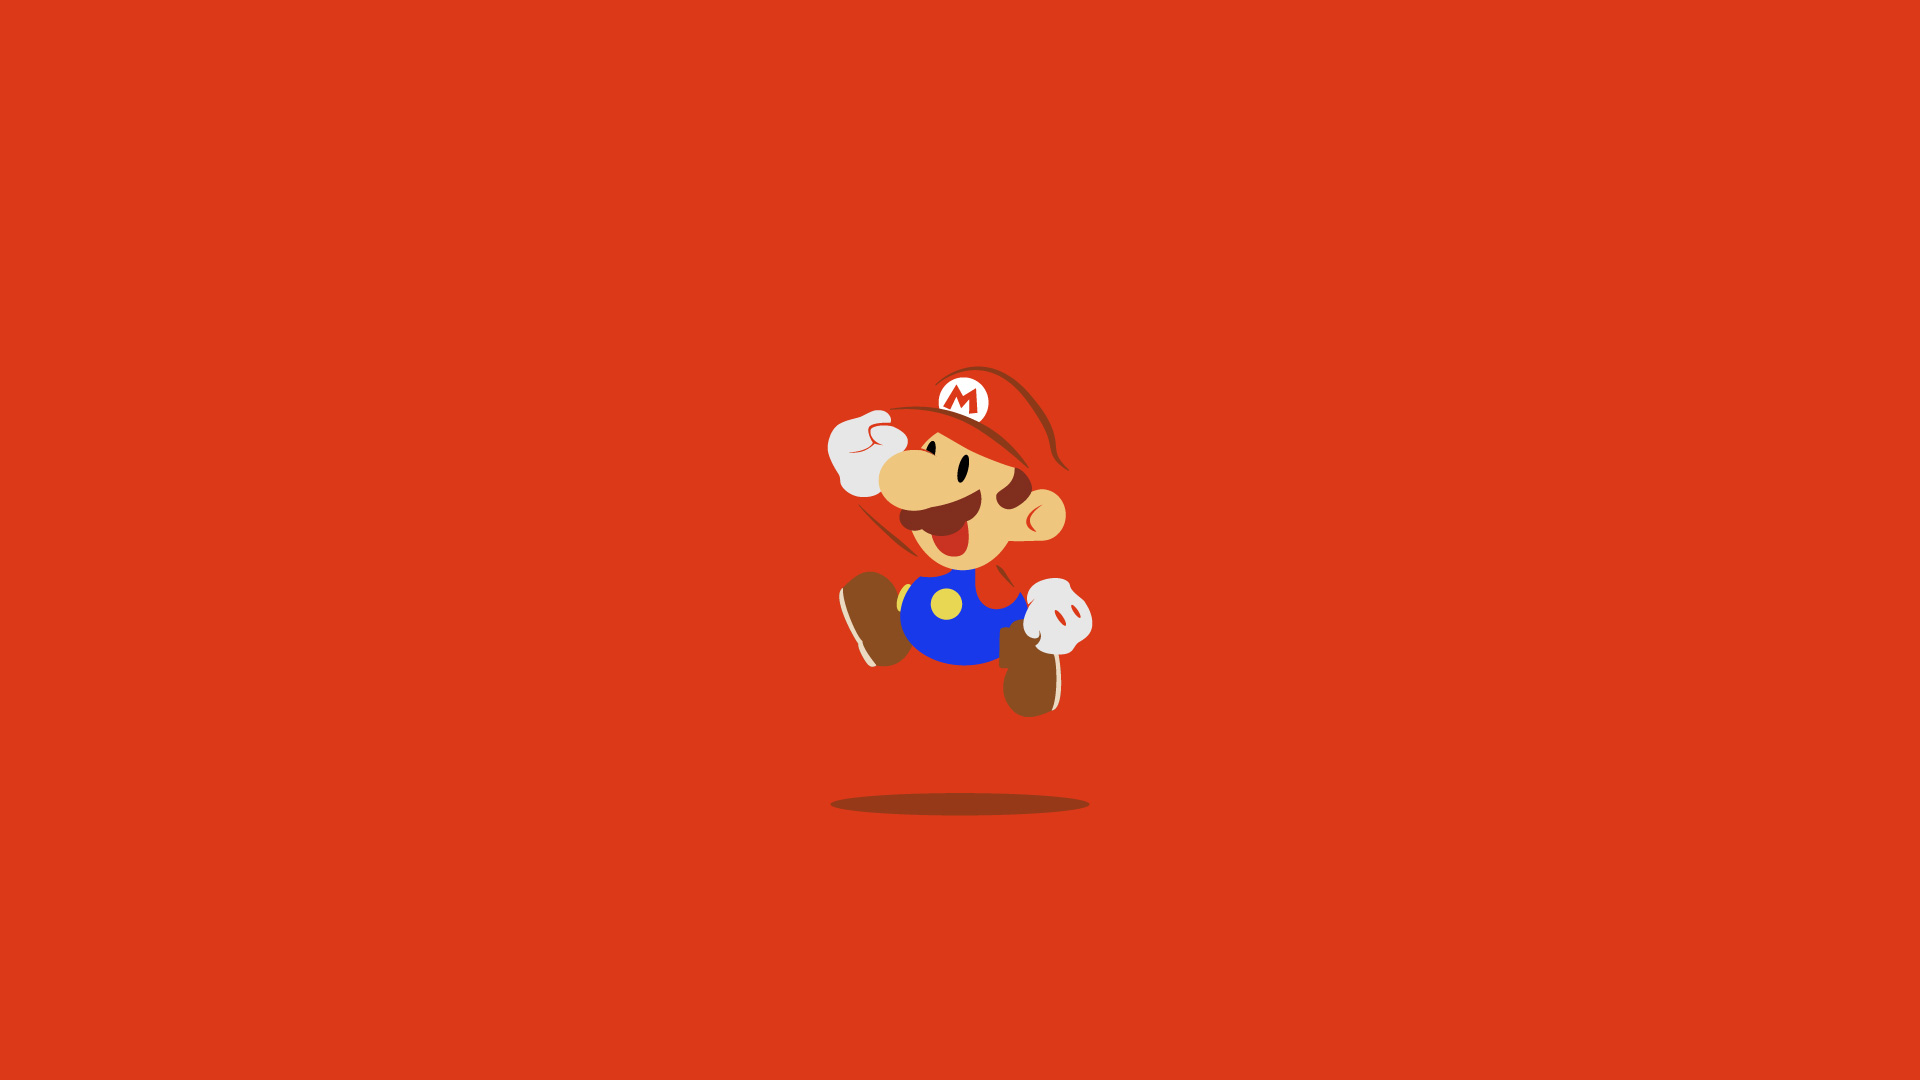 Red Desktop Wallpaper With Super Mario Jumping